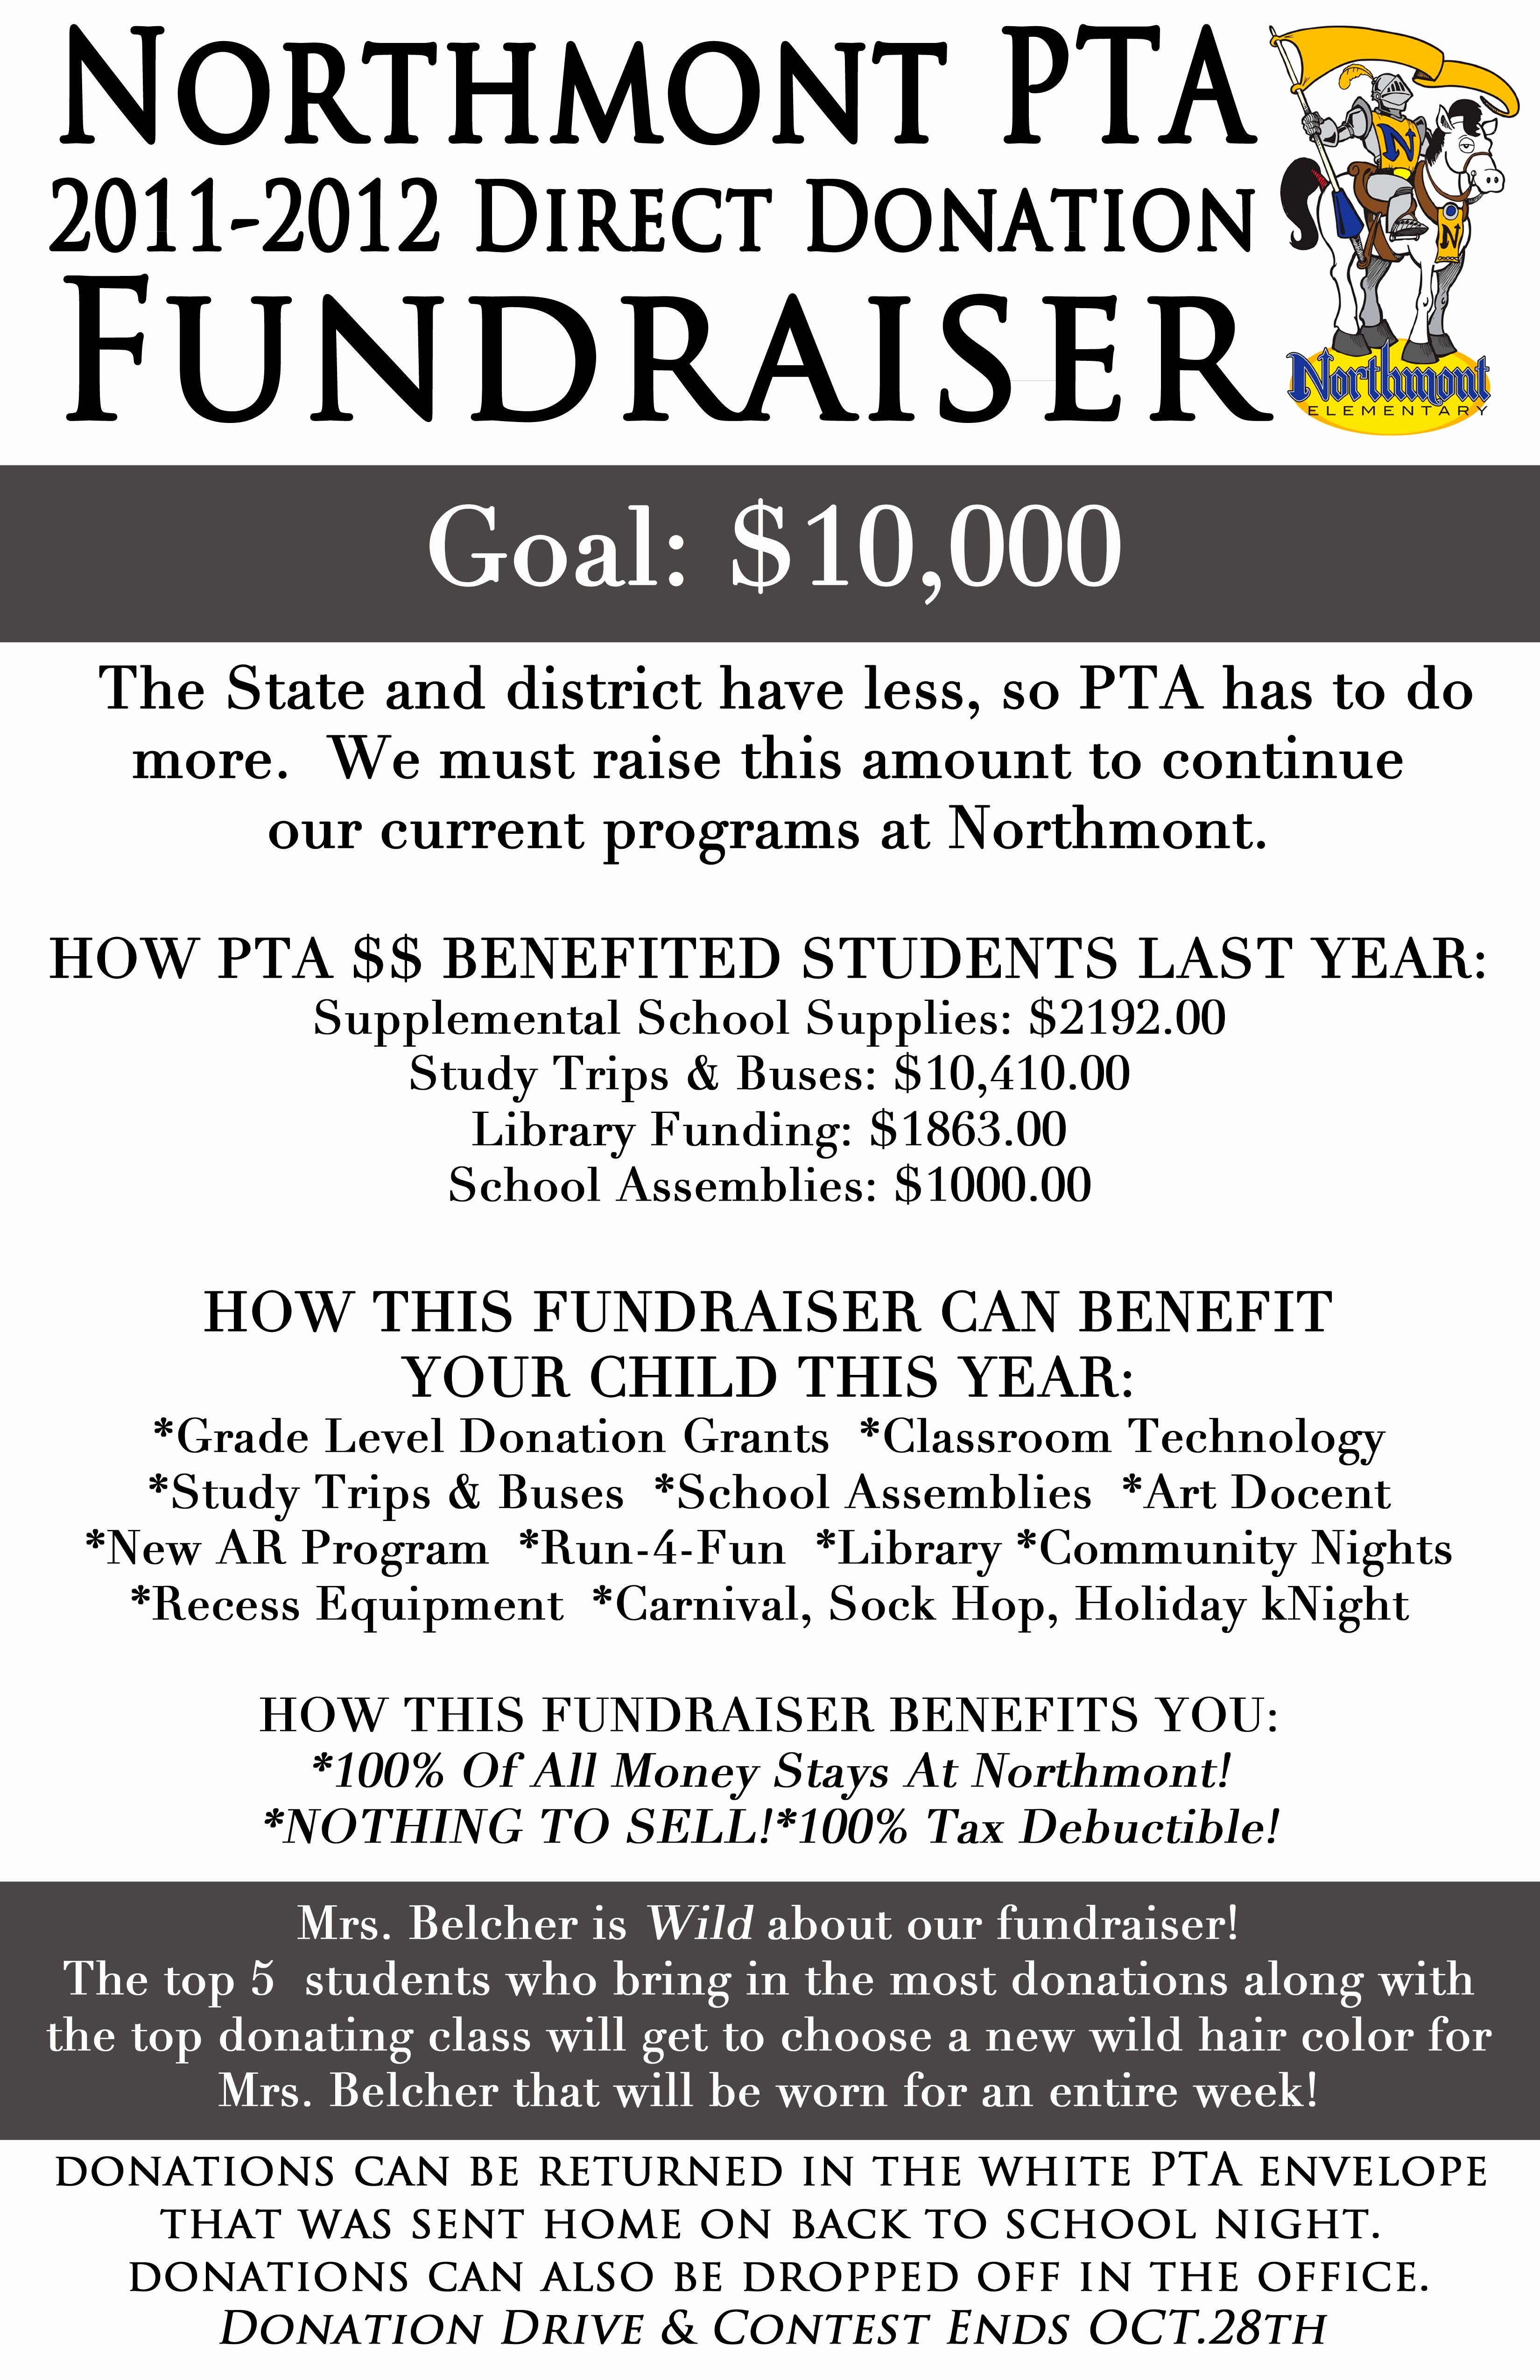 Fundraising Letter to Parents Luxury northmont Elementary Pta Direct Donation Fundraiser Pta Fundraiser